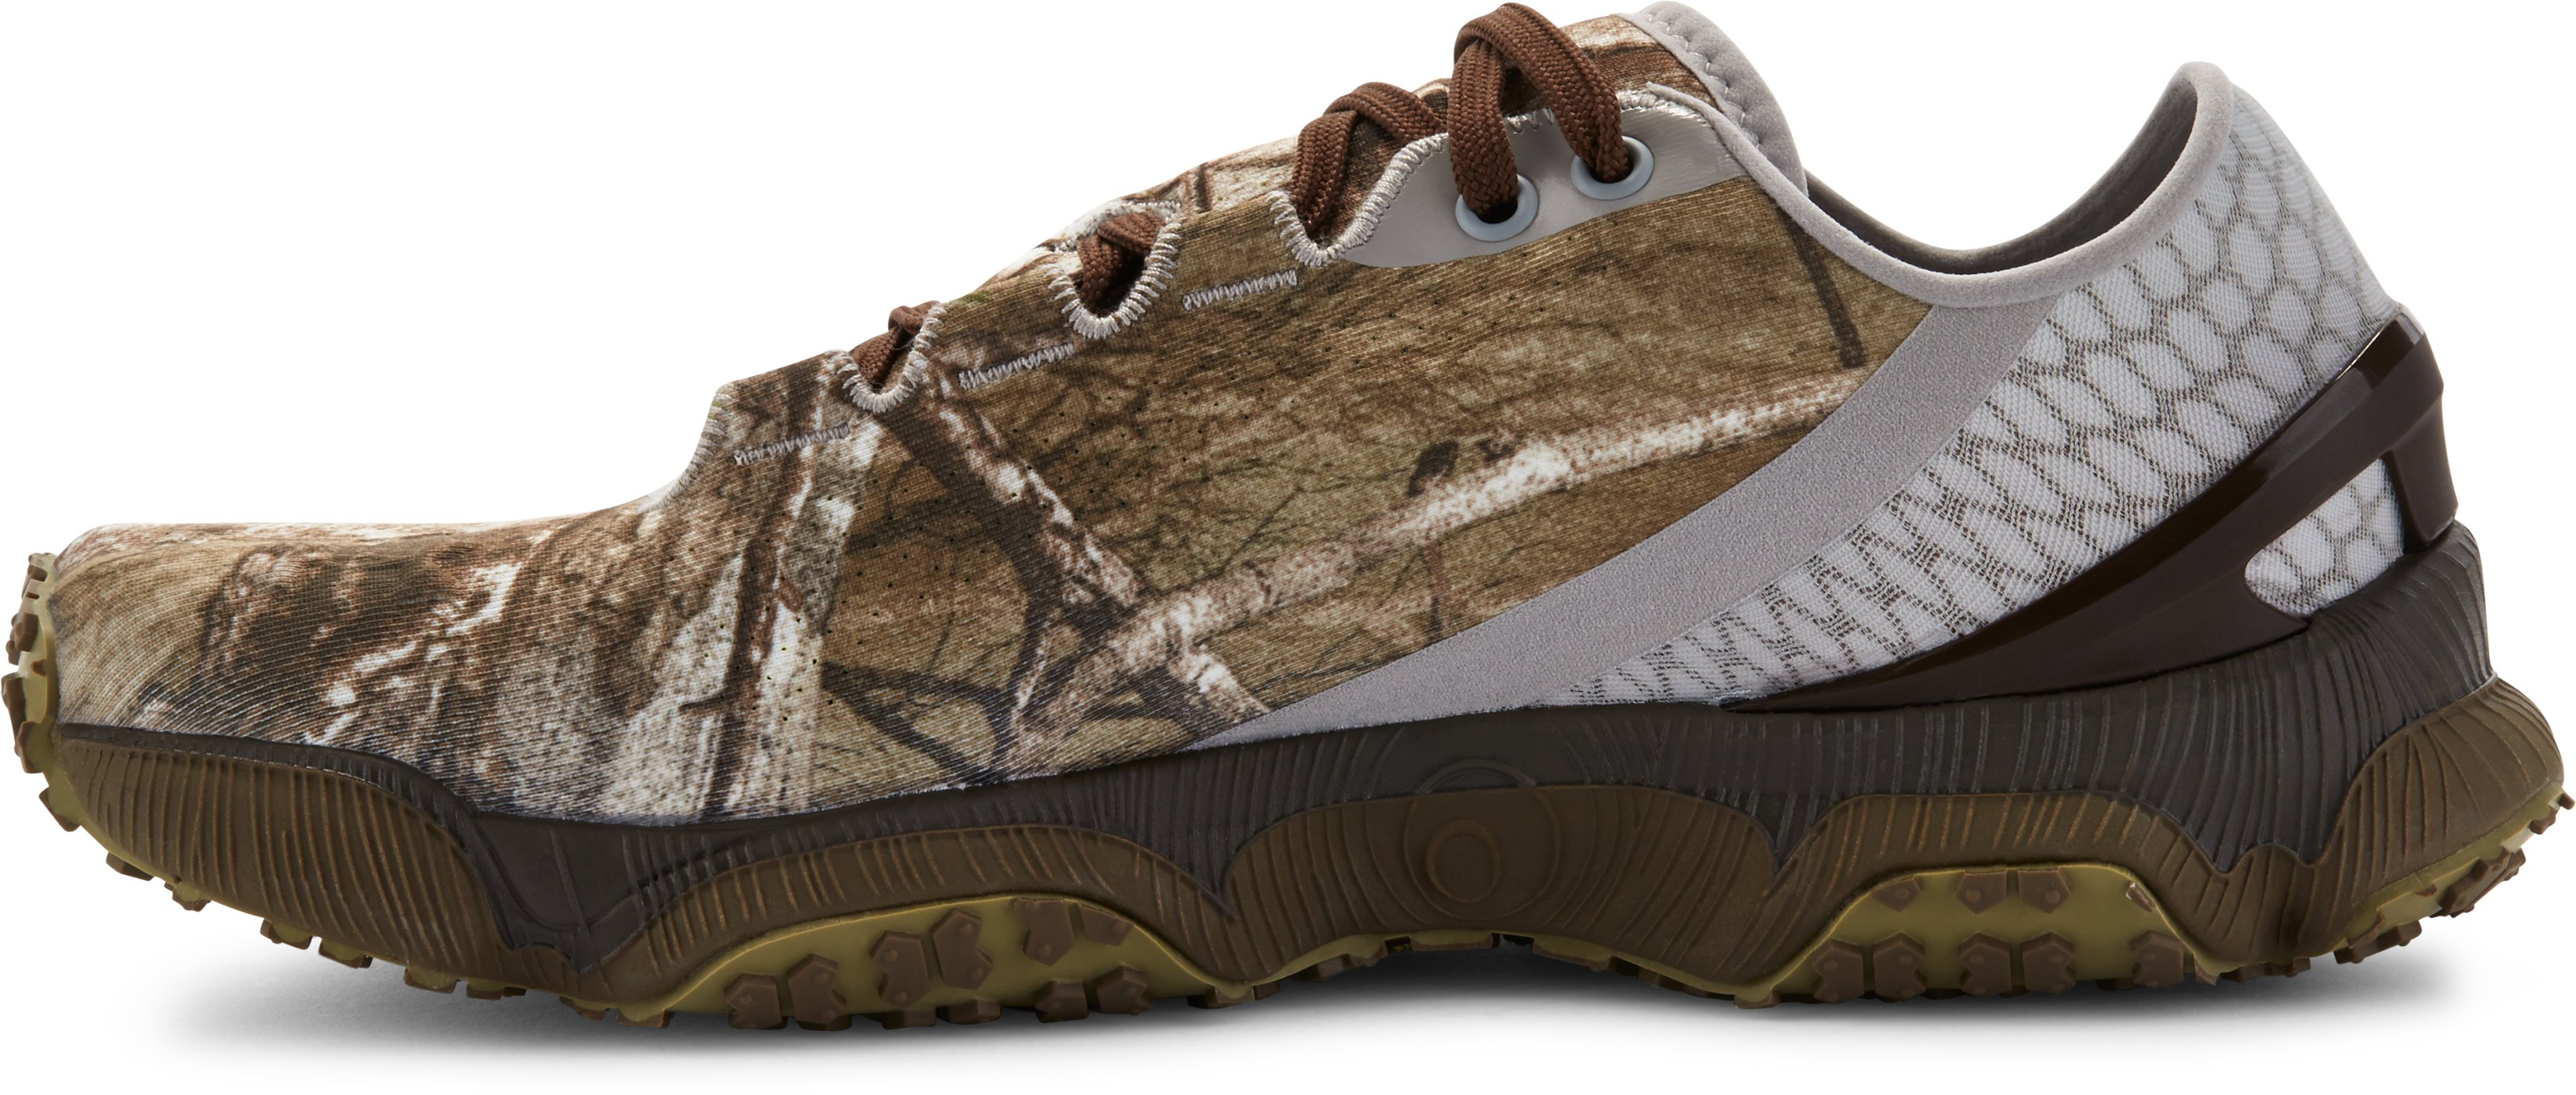 Women's UA SpeedForm® XC Camo Trail Running Shoes, REALTREE AP-XTRA, undefined